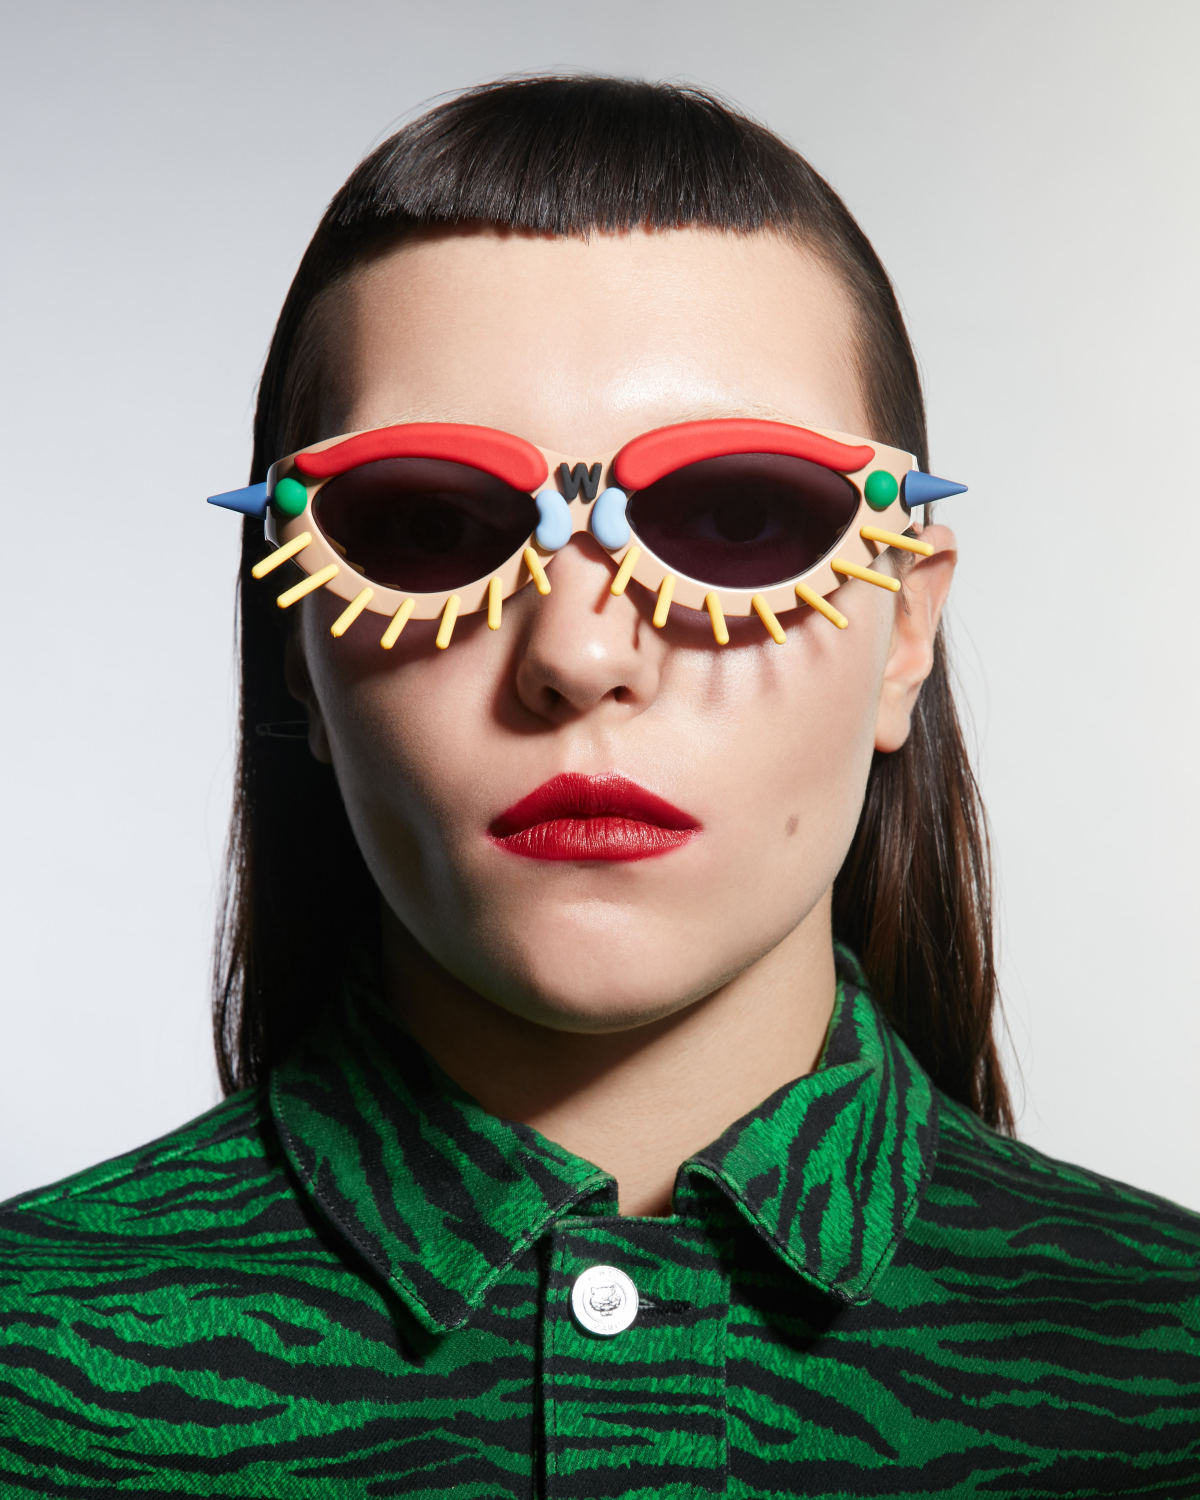 FAKBYFAK x Walter Van Beirendonck Couture sunglasses Toy Glasses Model 1. Light brown with coloured pins Code: 09/01/03